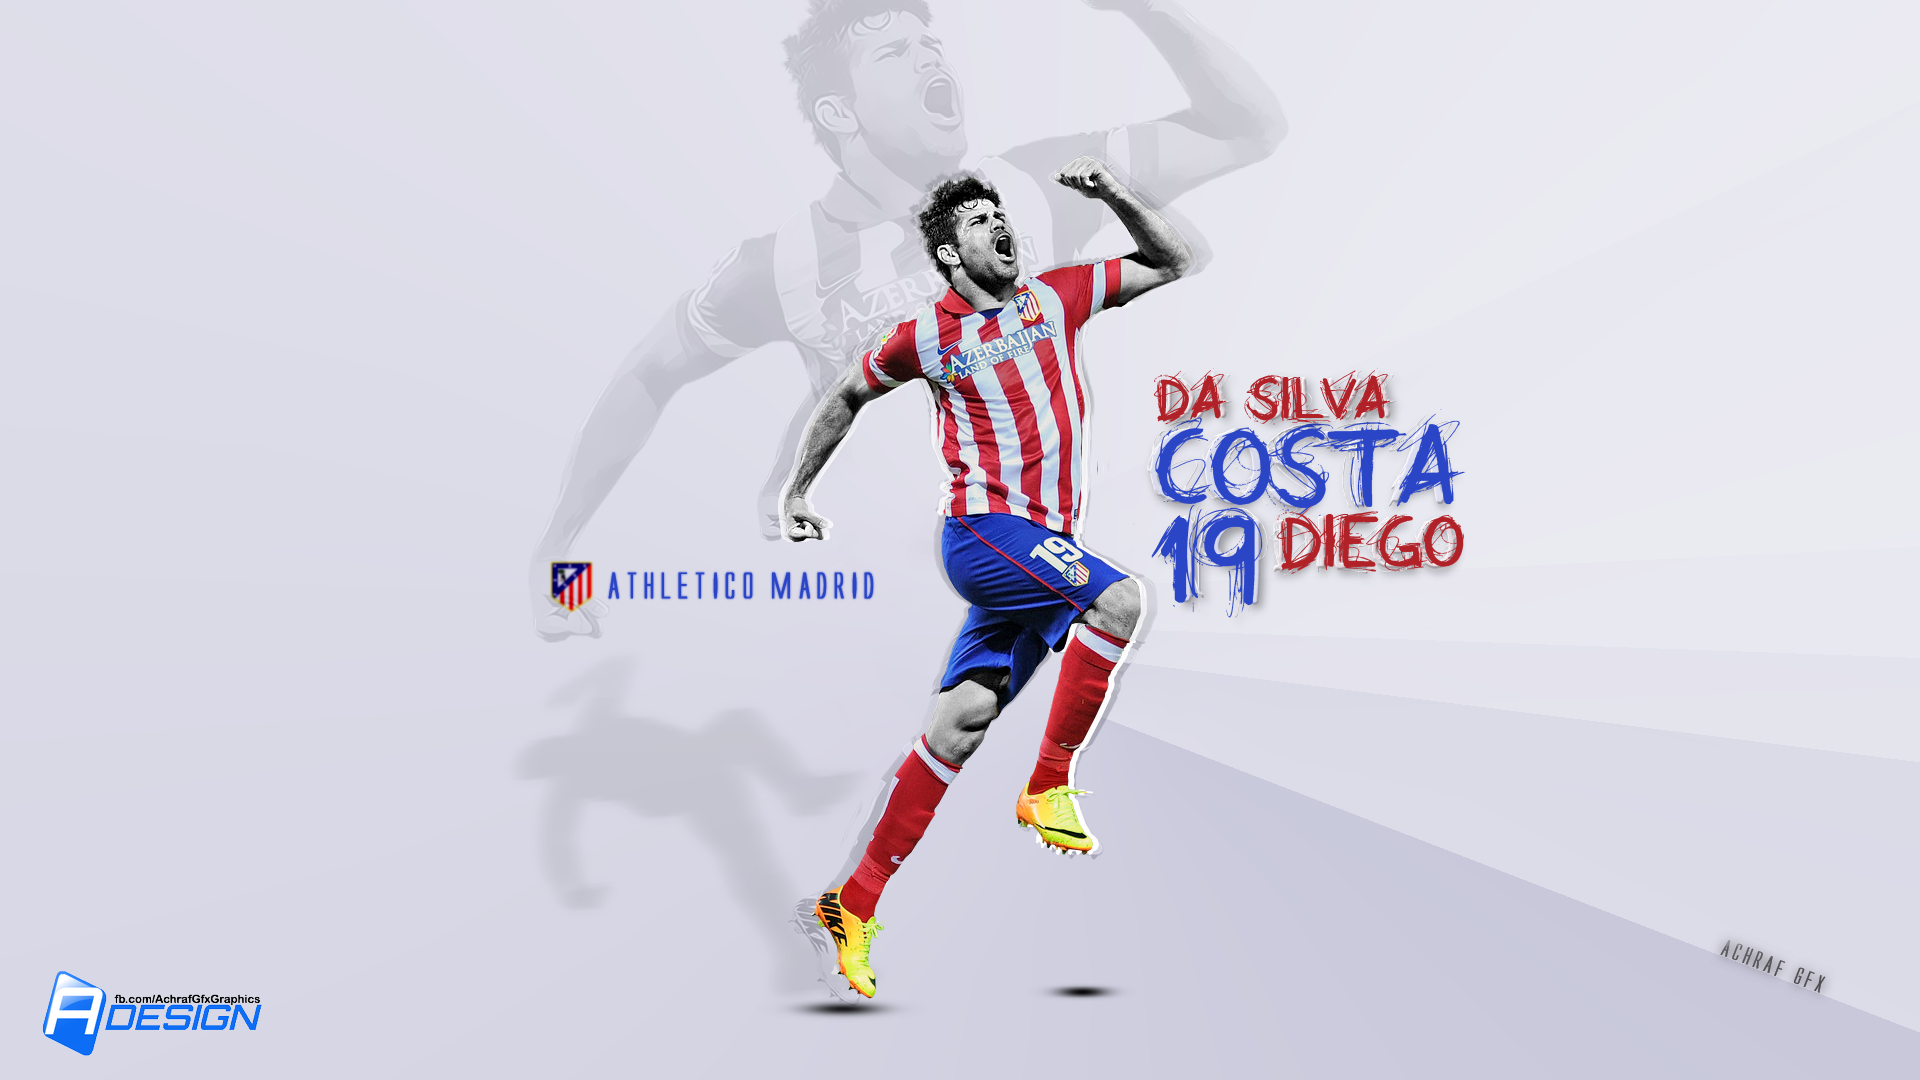 diego costa atletico madrid 2014 wallpaper Desktop Backgrounds 1920x1080